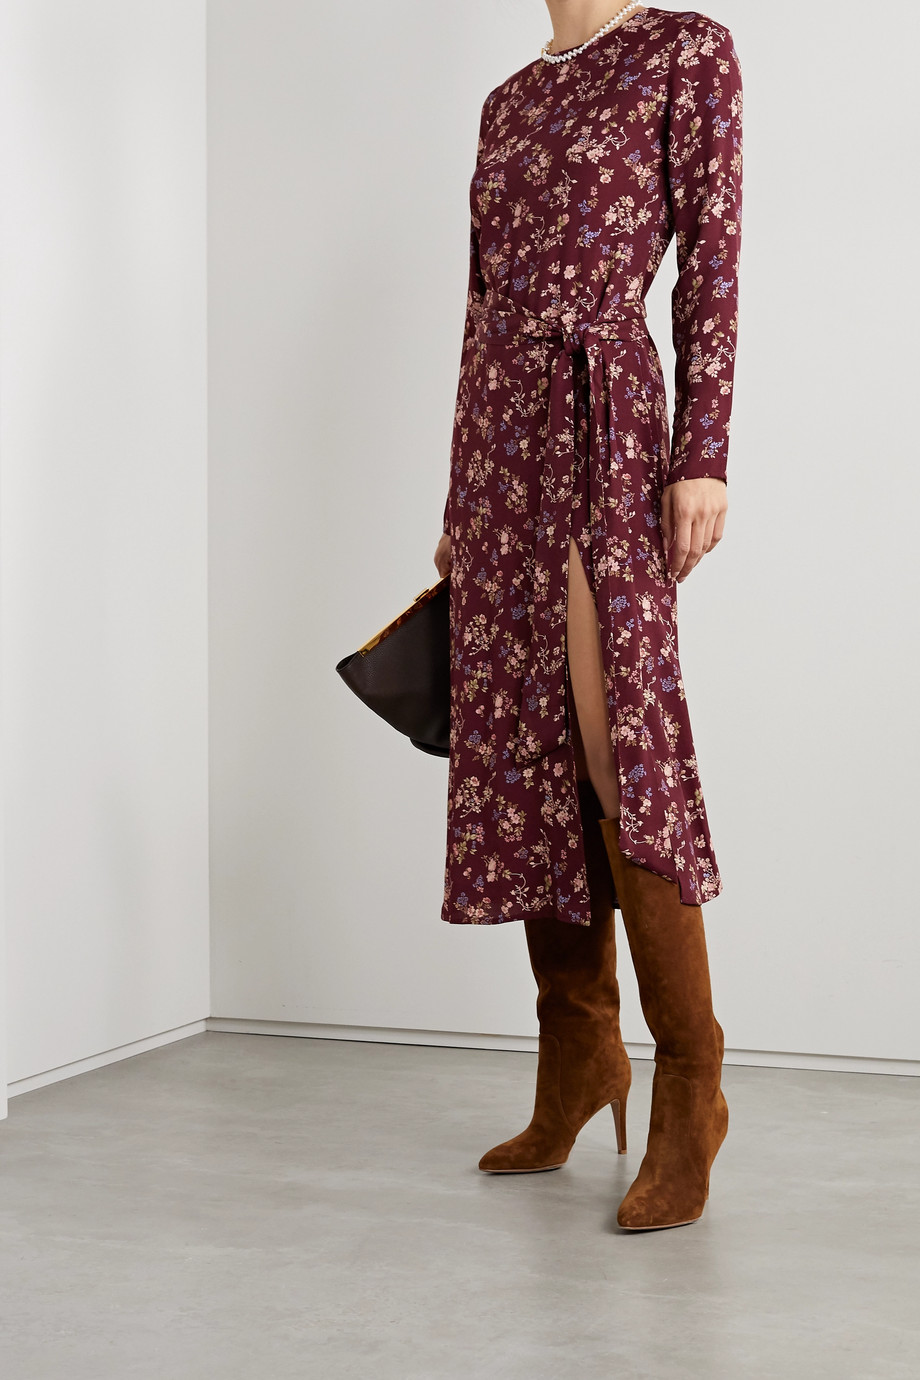 Reformation + NET SUSTAIN Jeana belted floral-print crepe midi dress